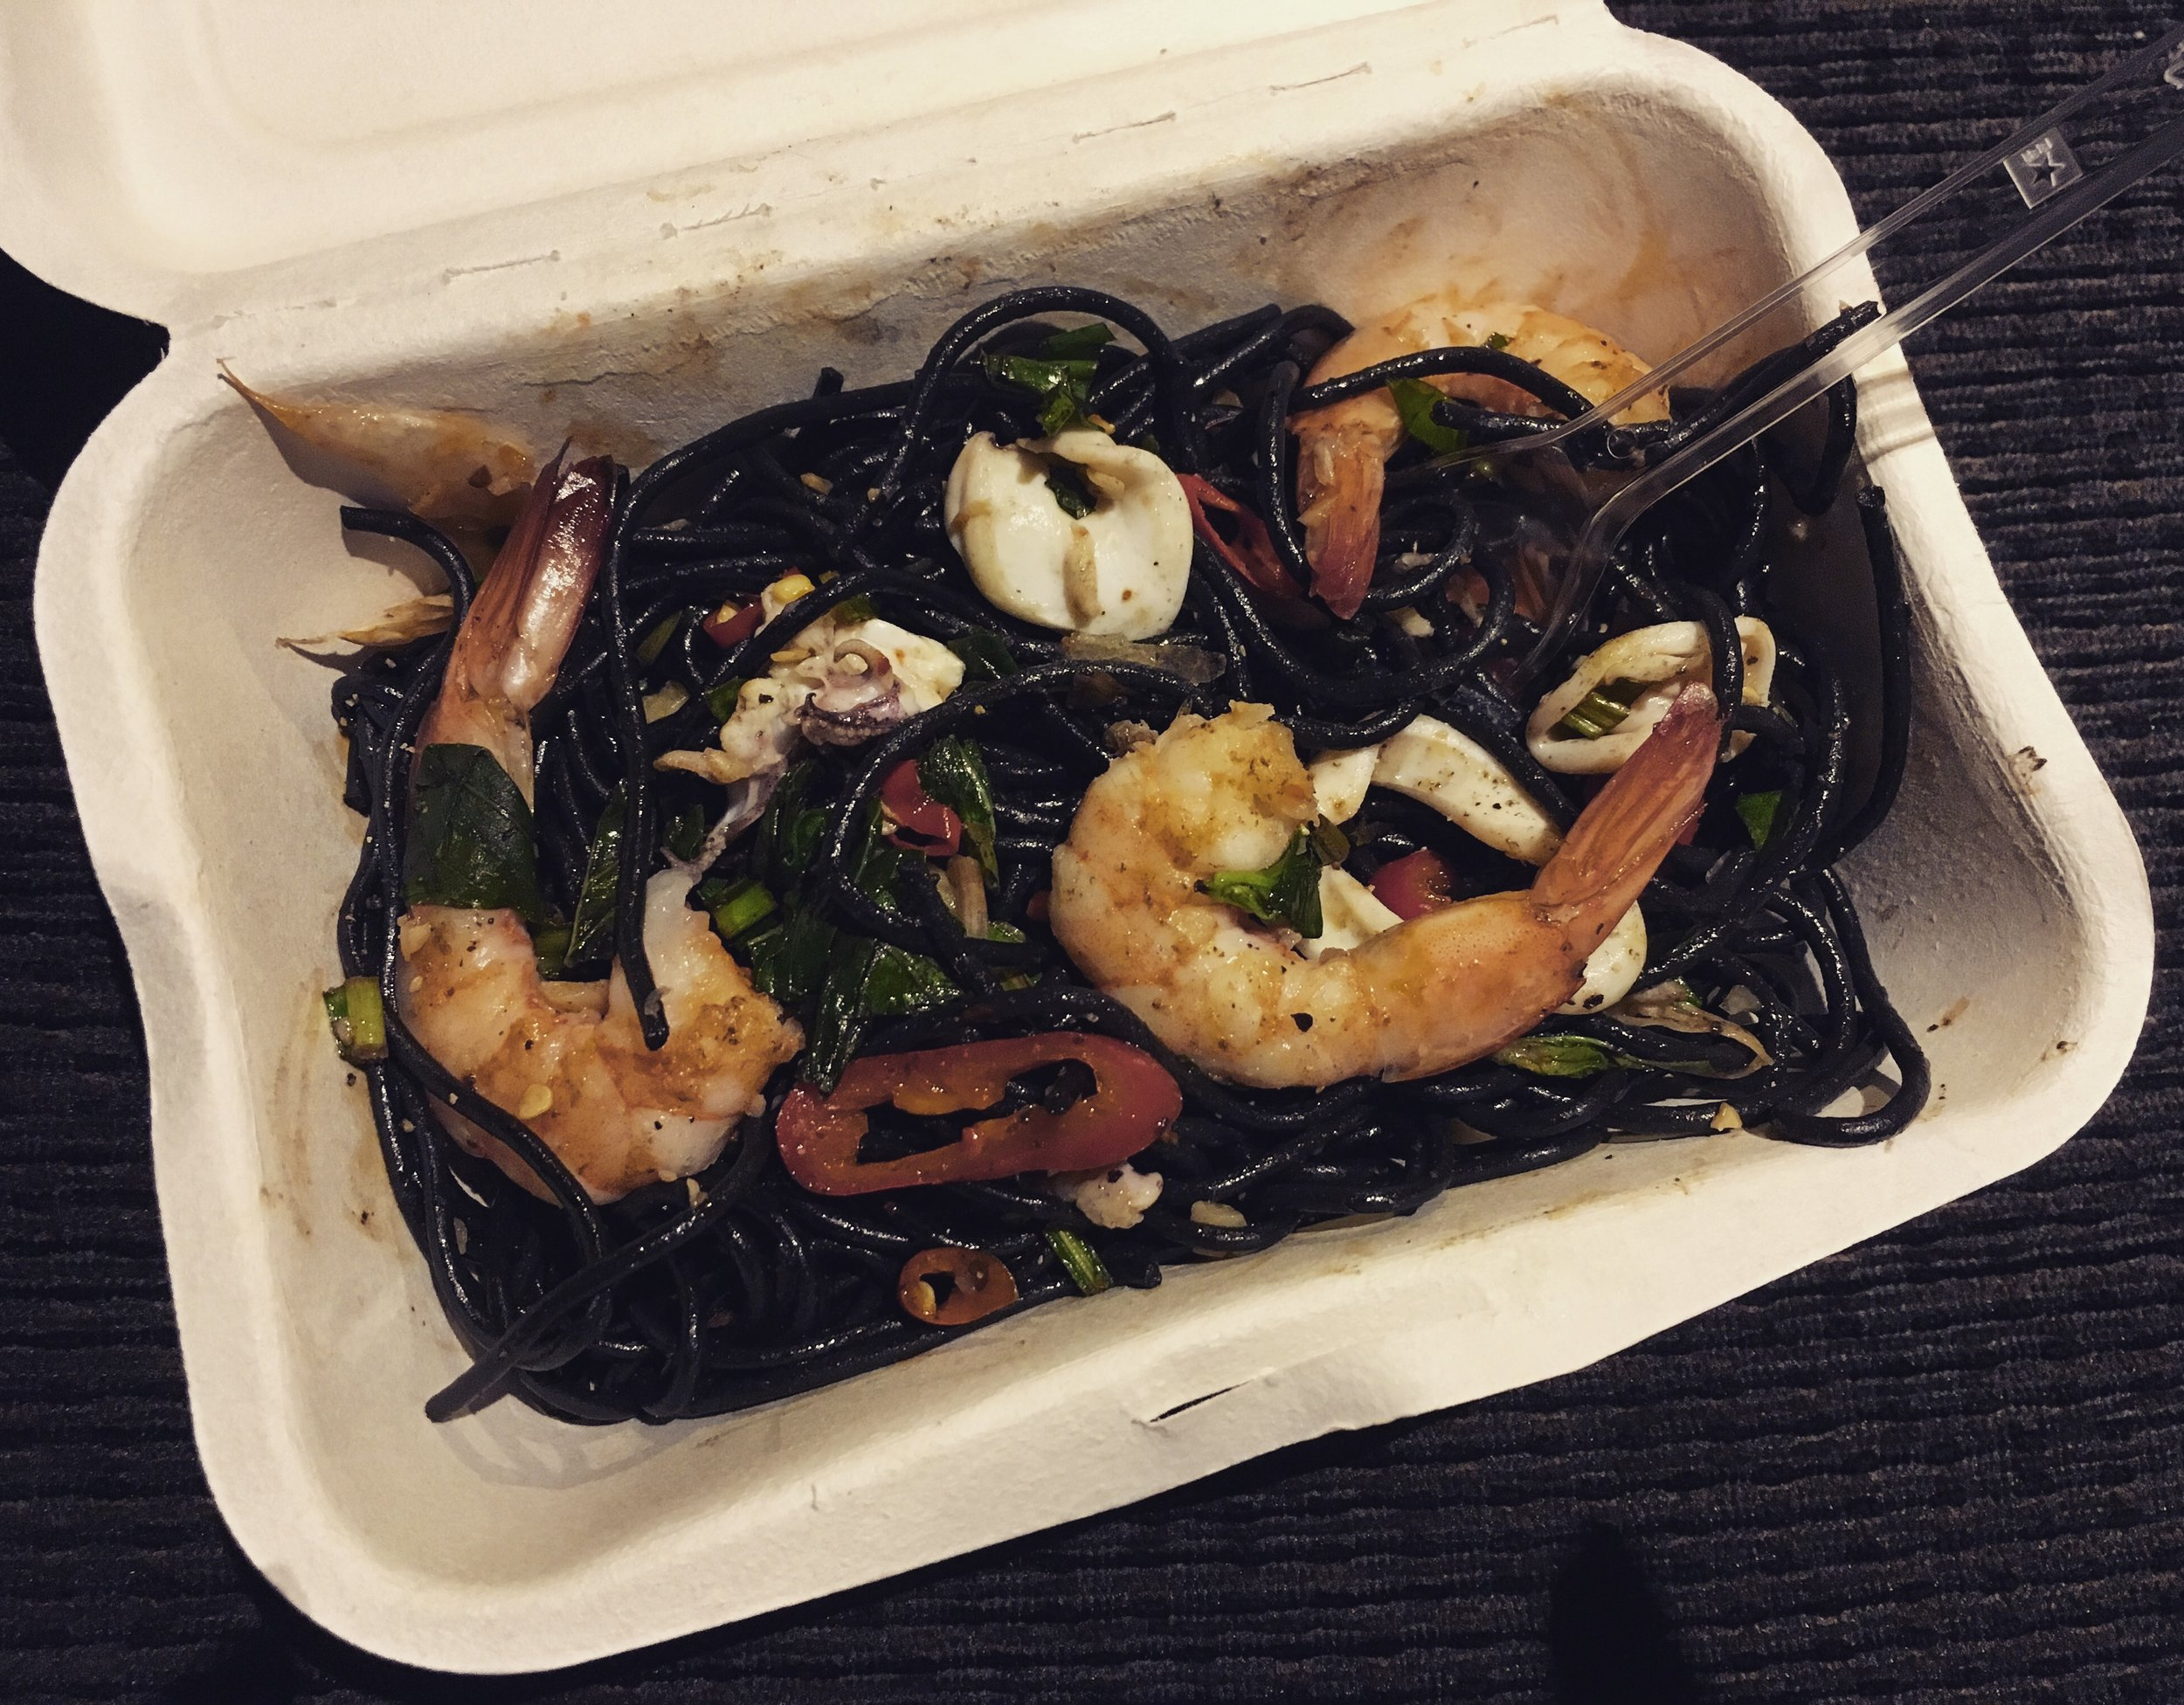 To squid ink noodles at Ratchada Night Market